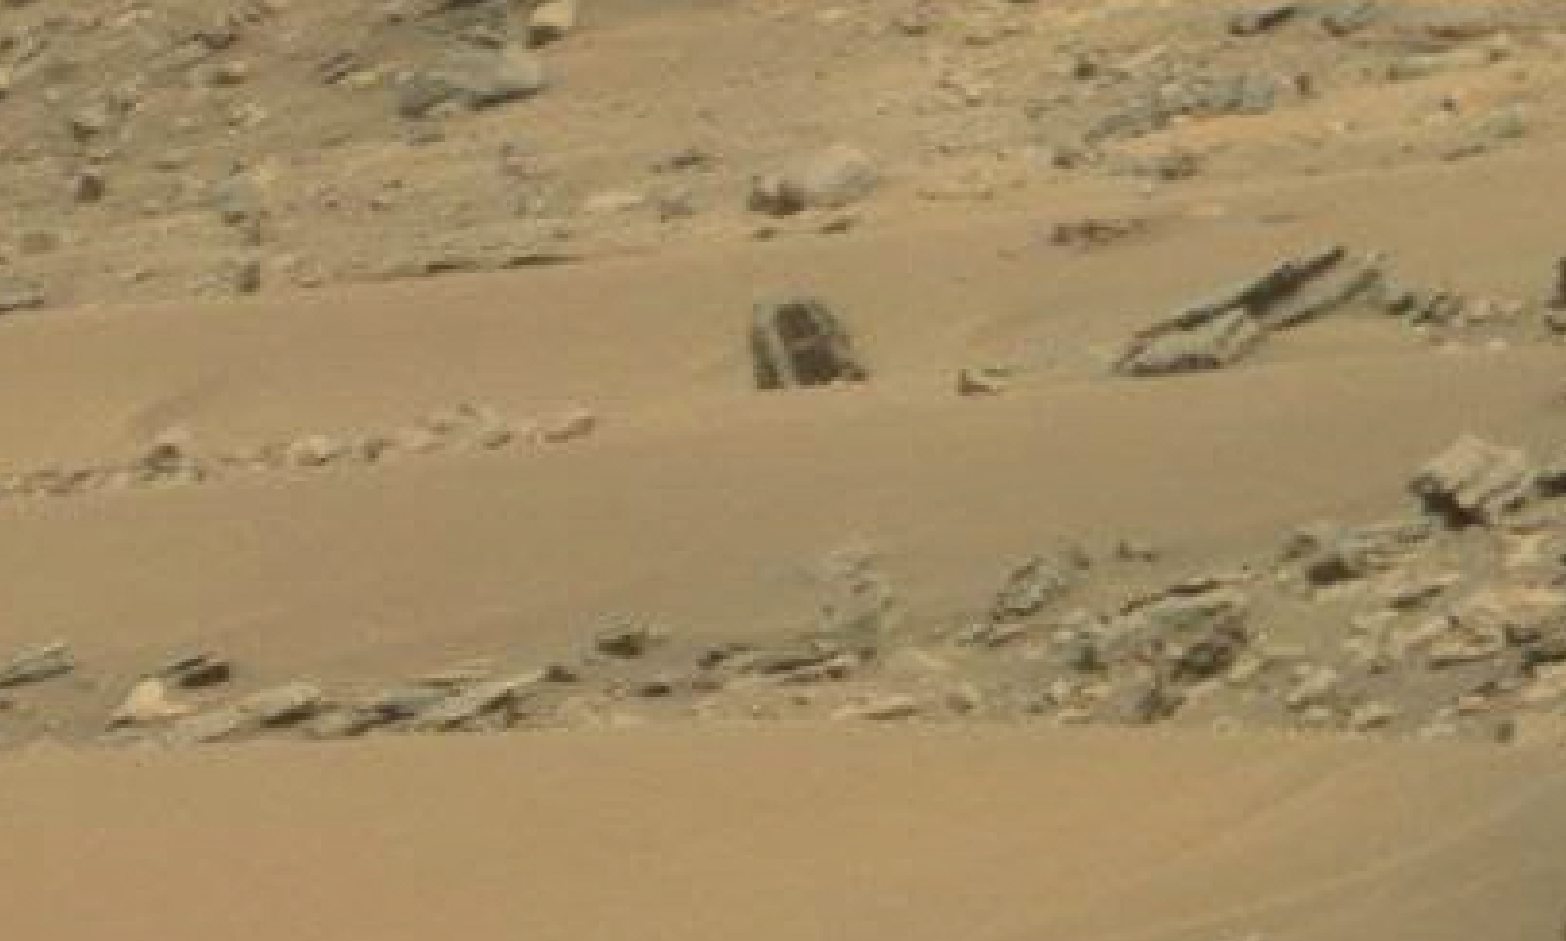 mars sol 1434 anomaly artifacts 17 was life on mars